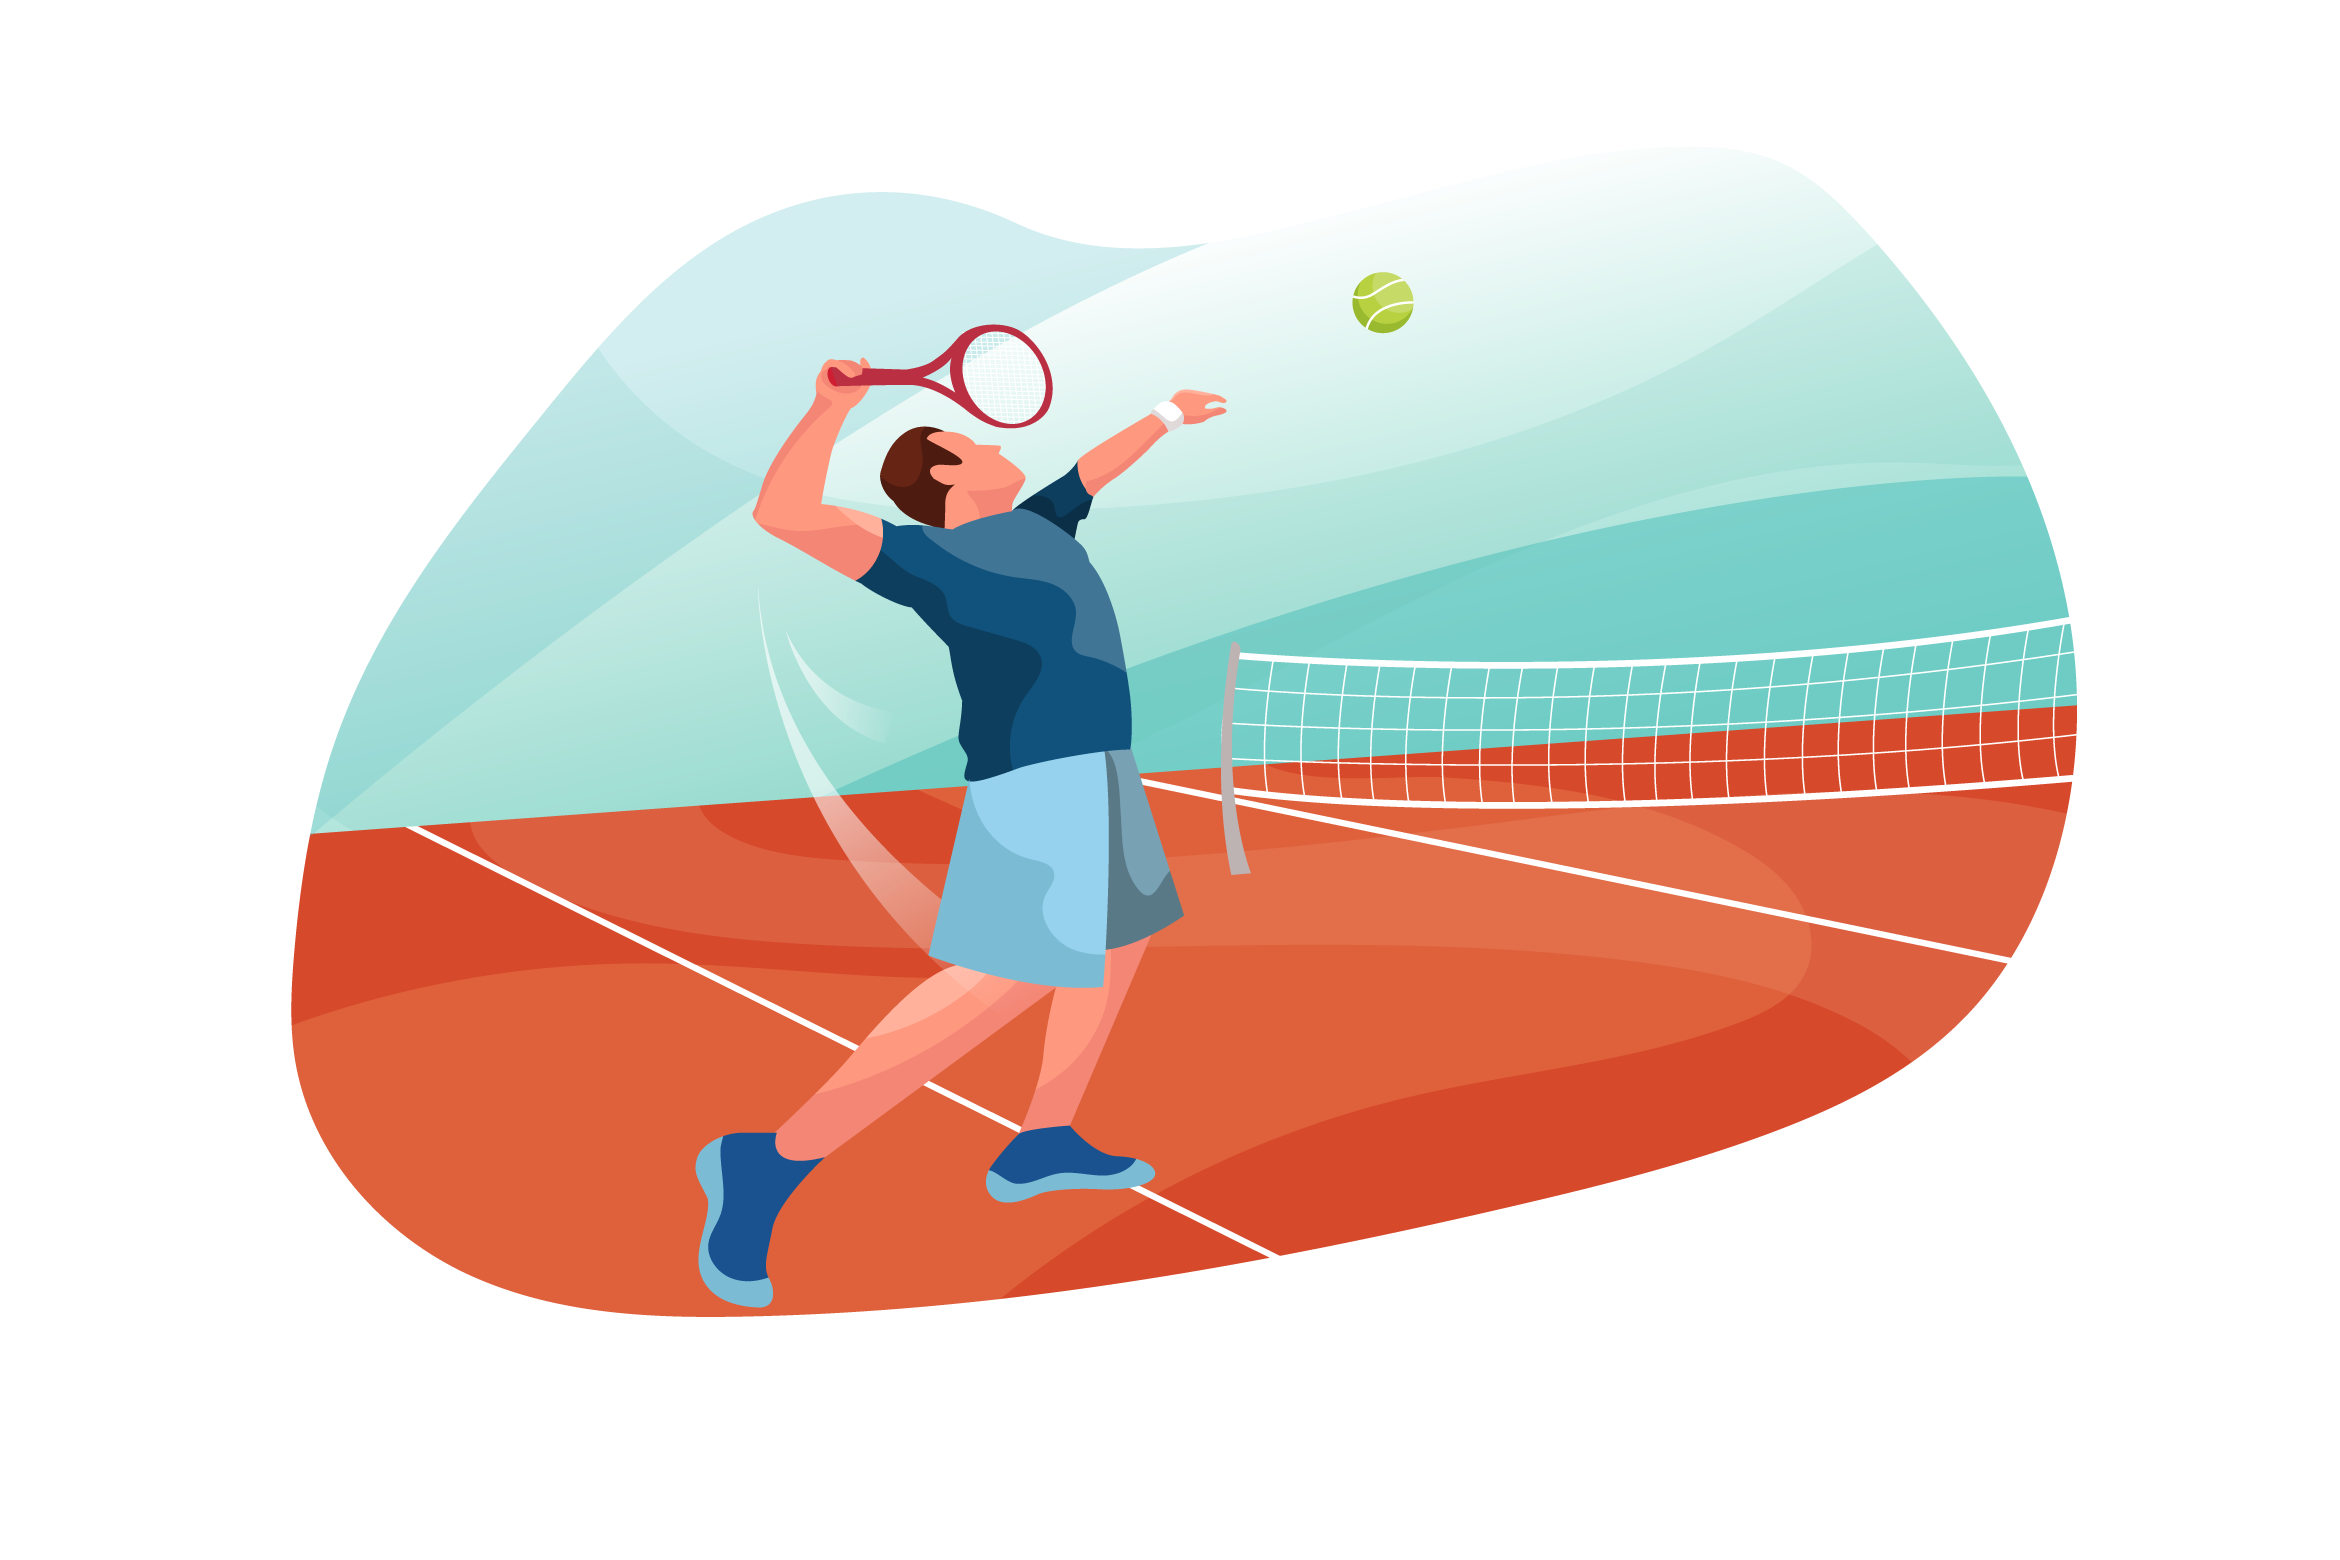 male tennis player drawing of a serve